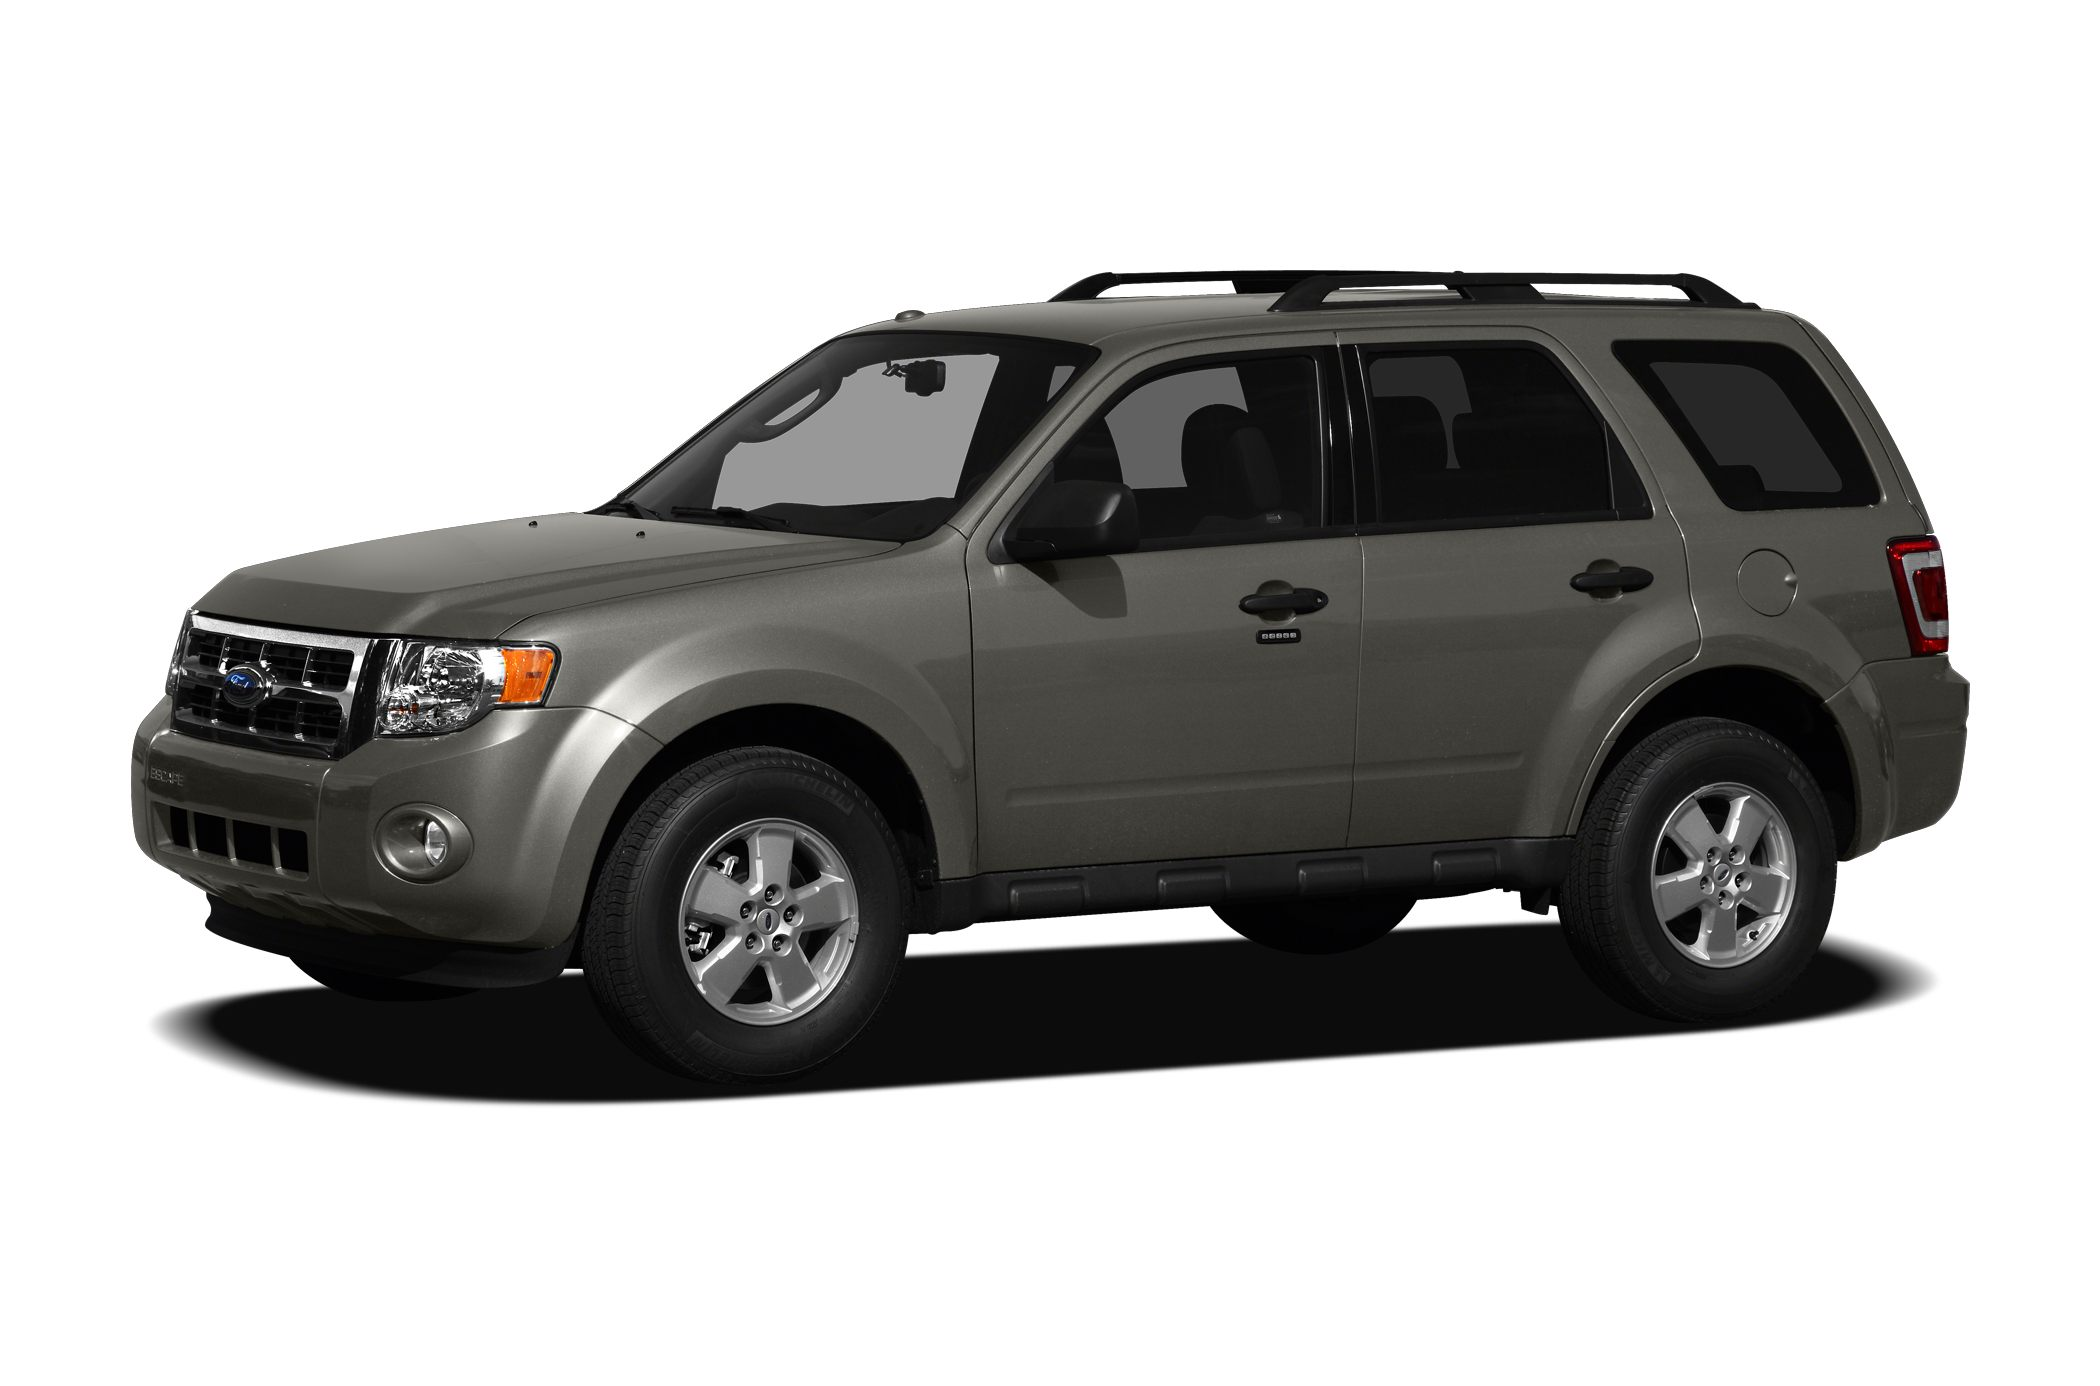 2012 Ford Escape XLT SUV for sale in Lancaster for $17,627 with 32,341 miles